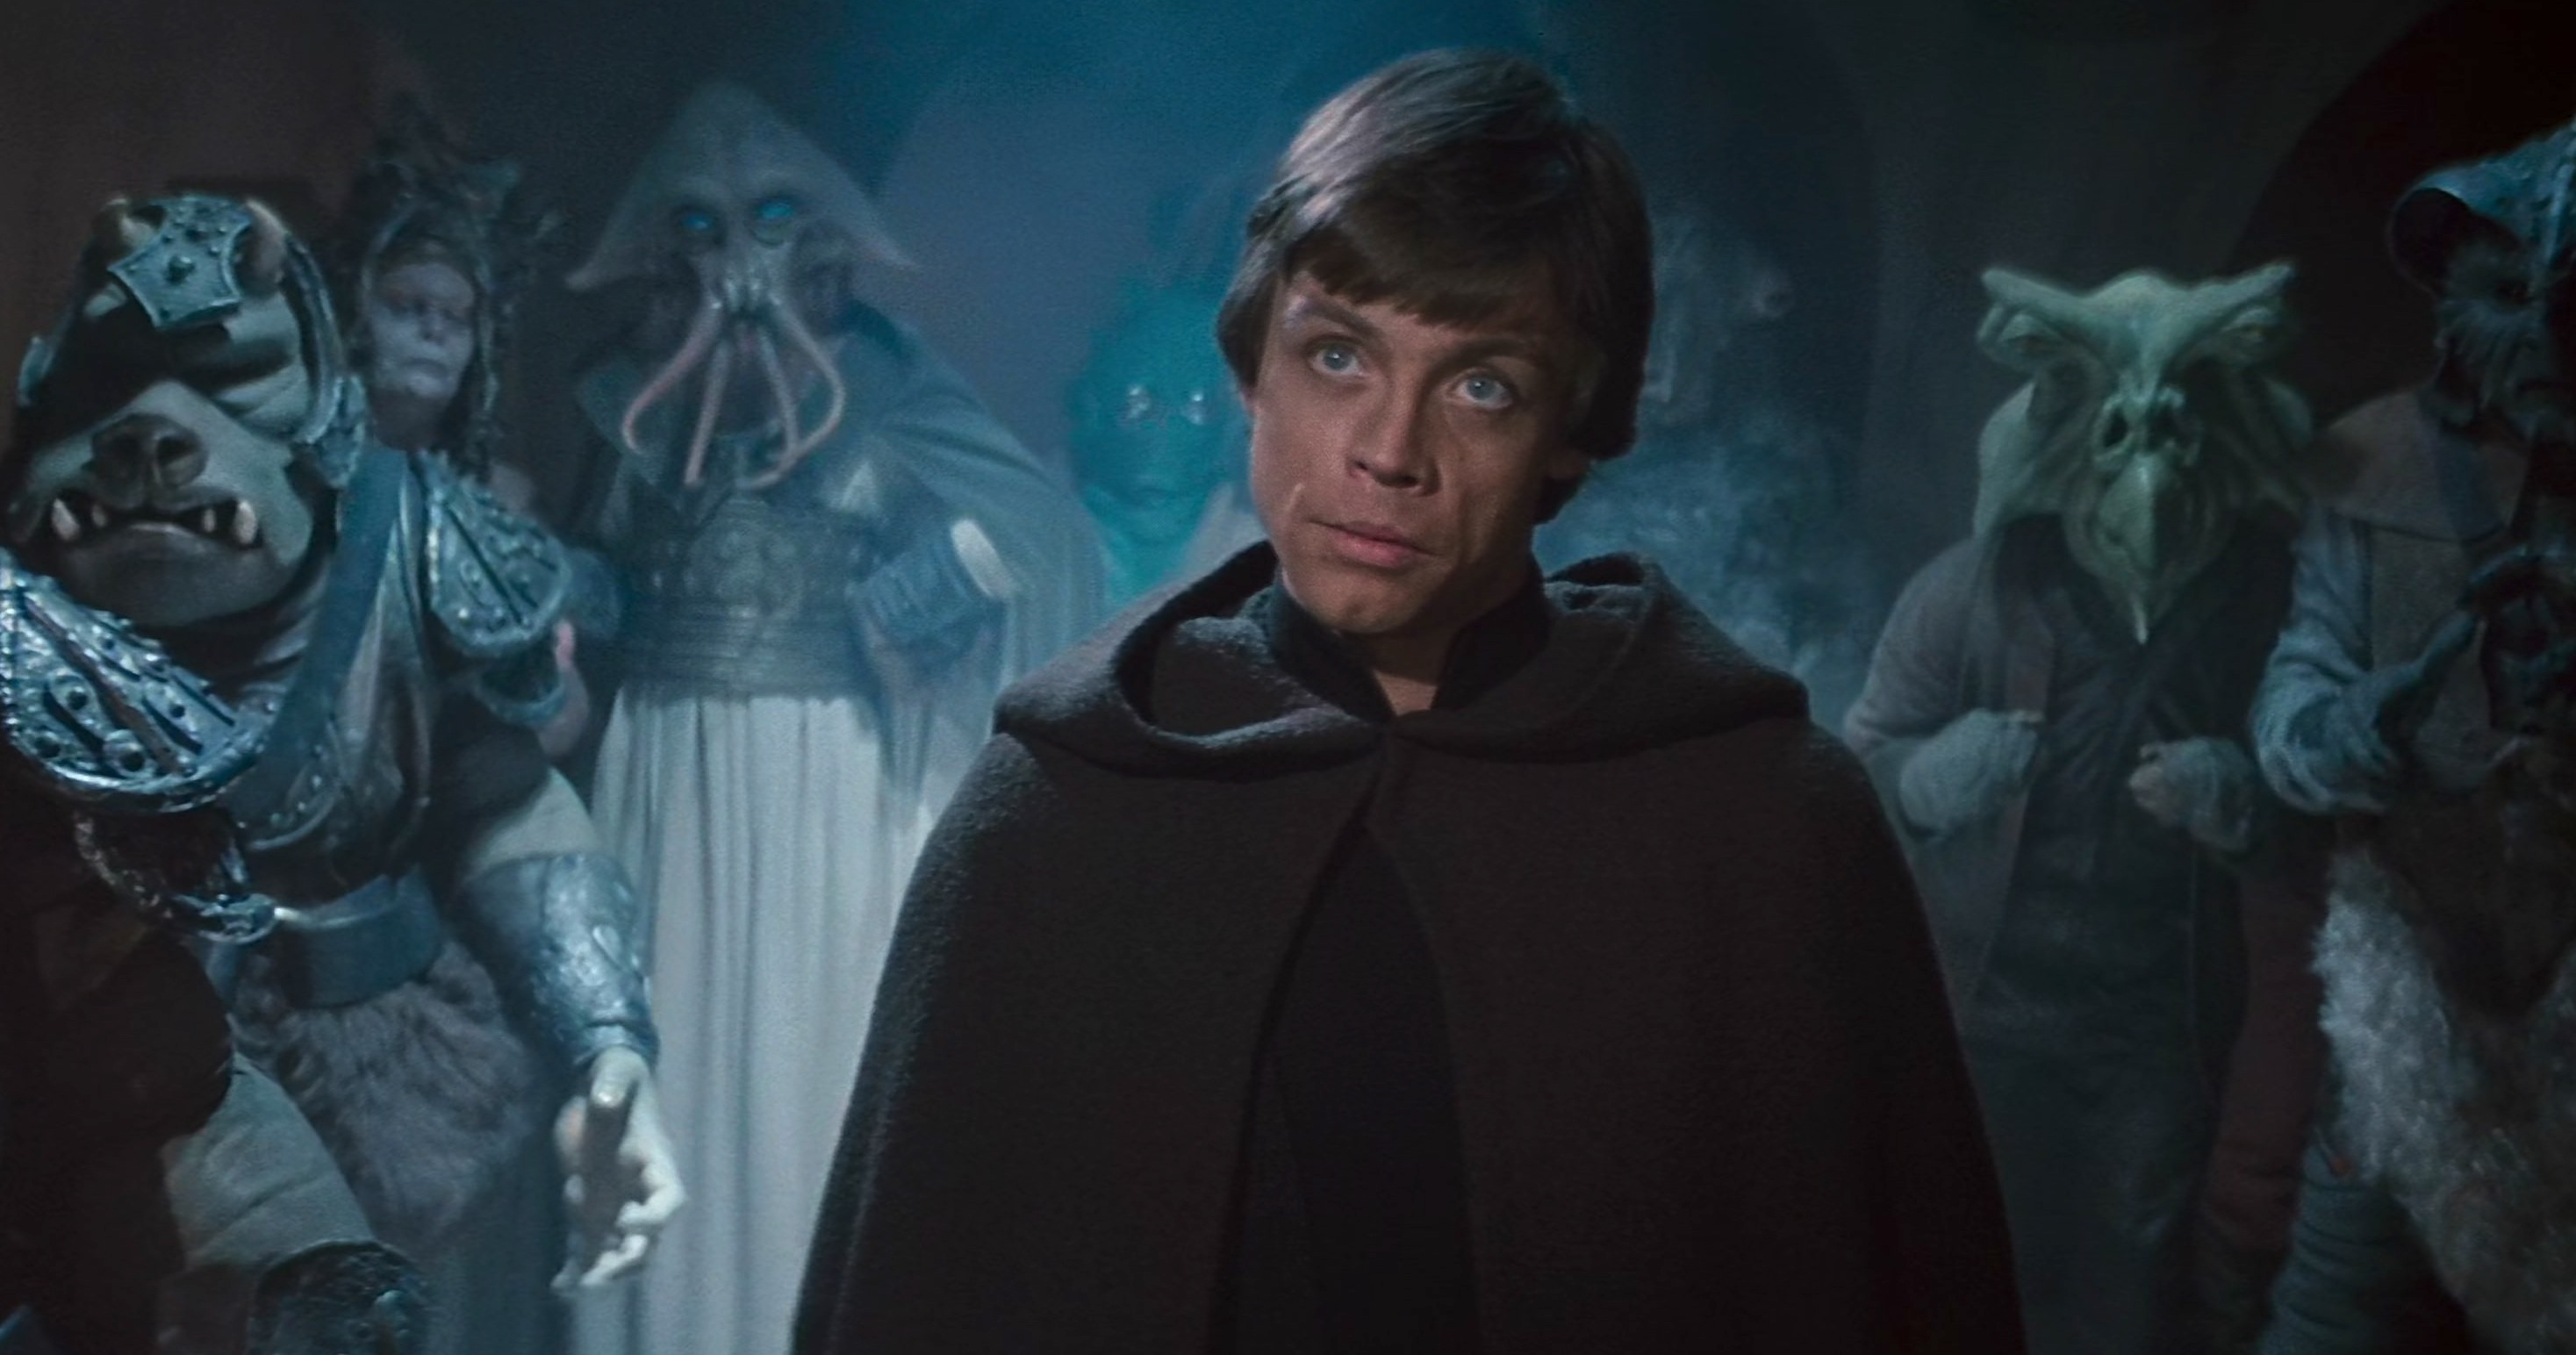 Luke Skywalker stands in Jabba's Palace with aliens behind him